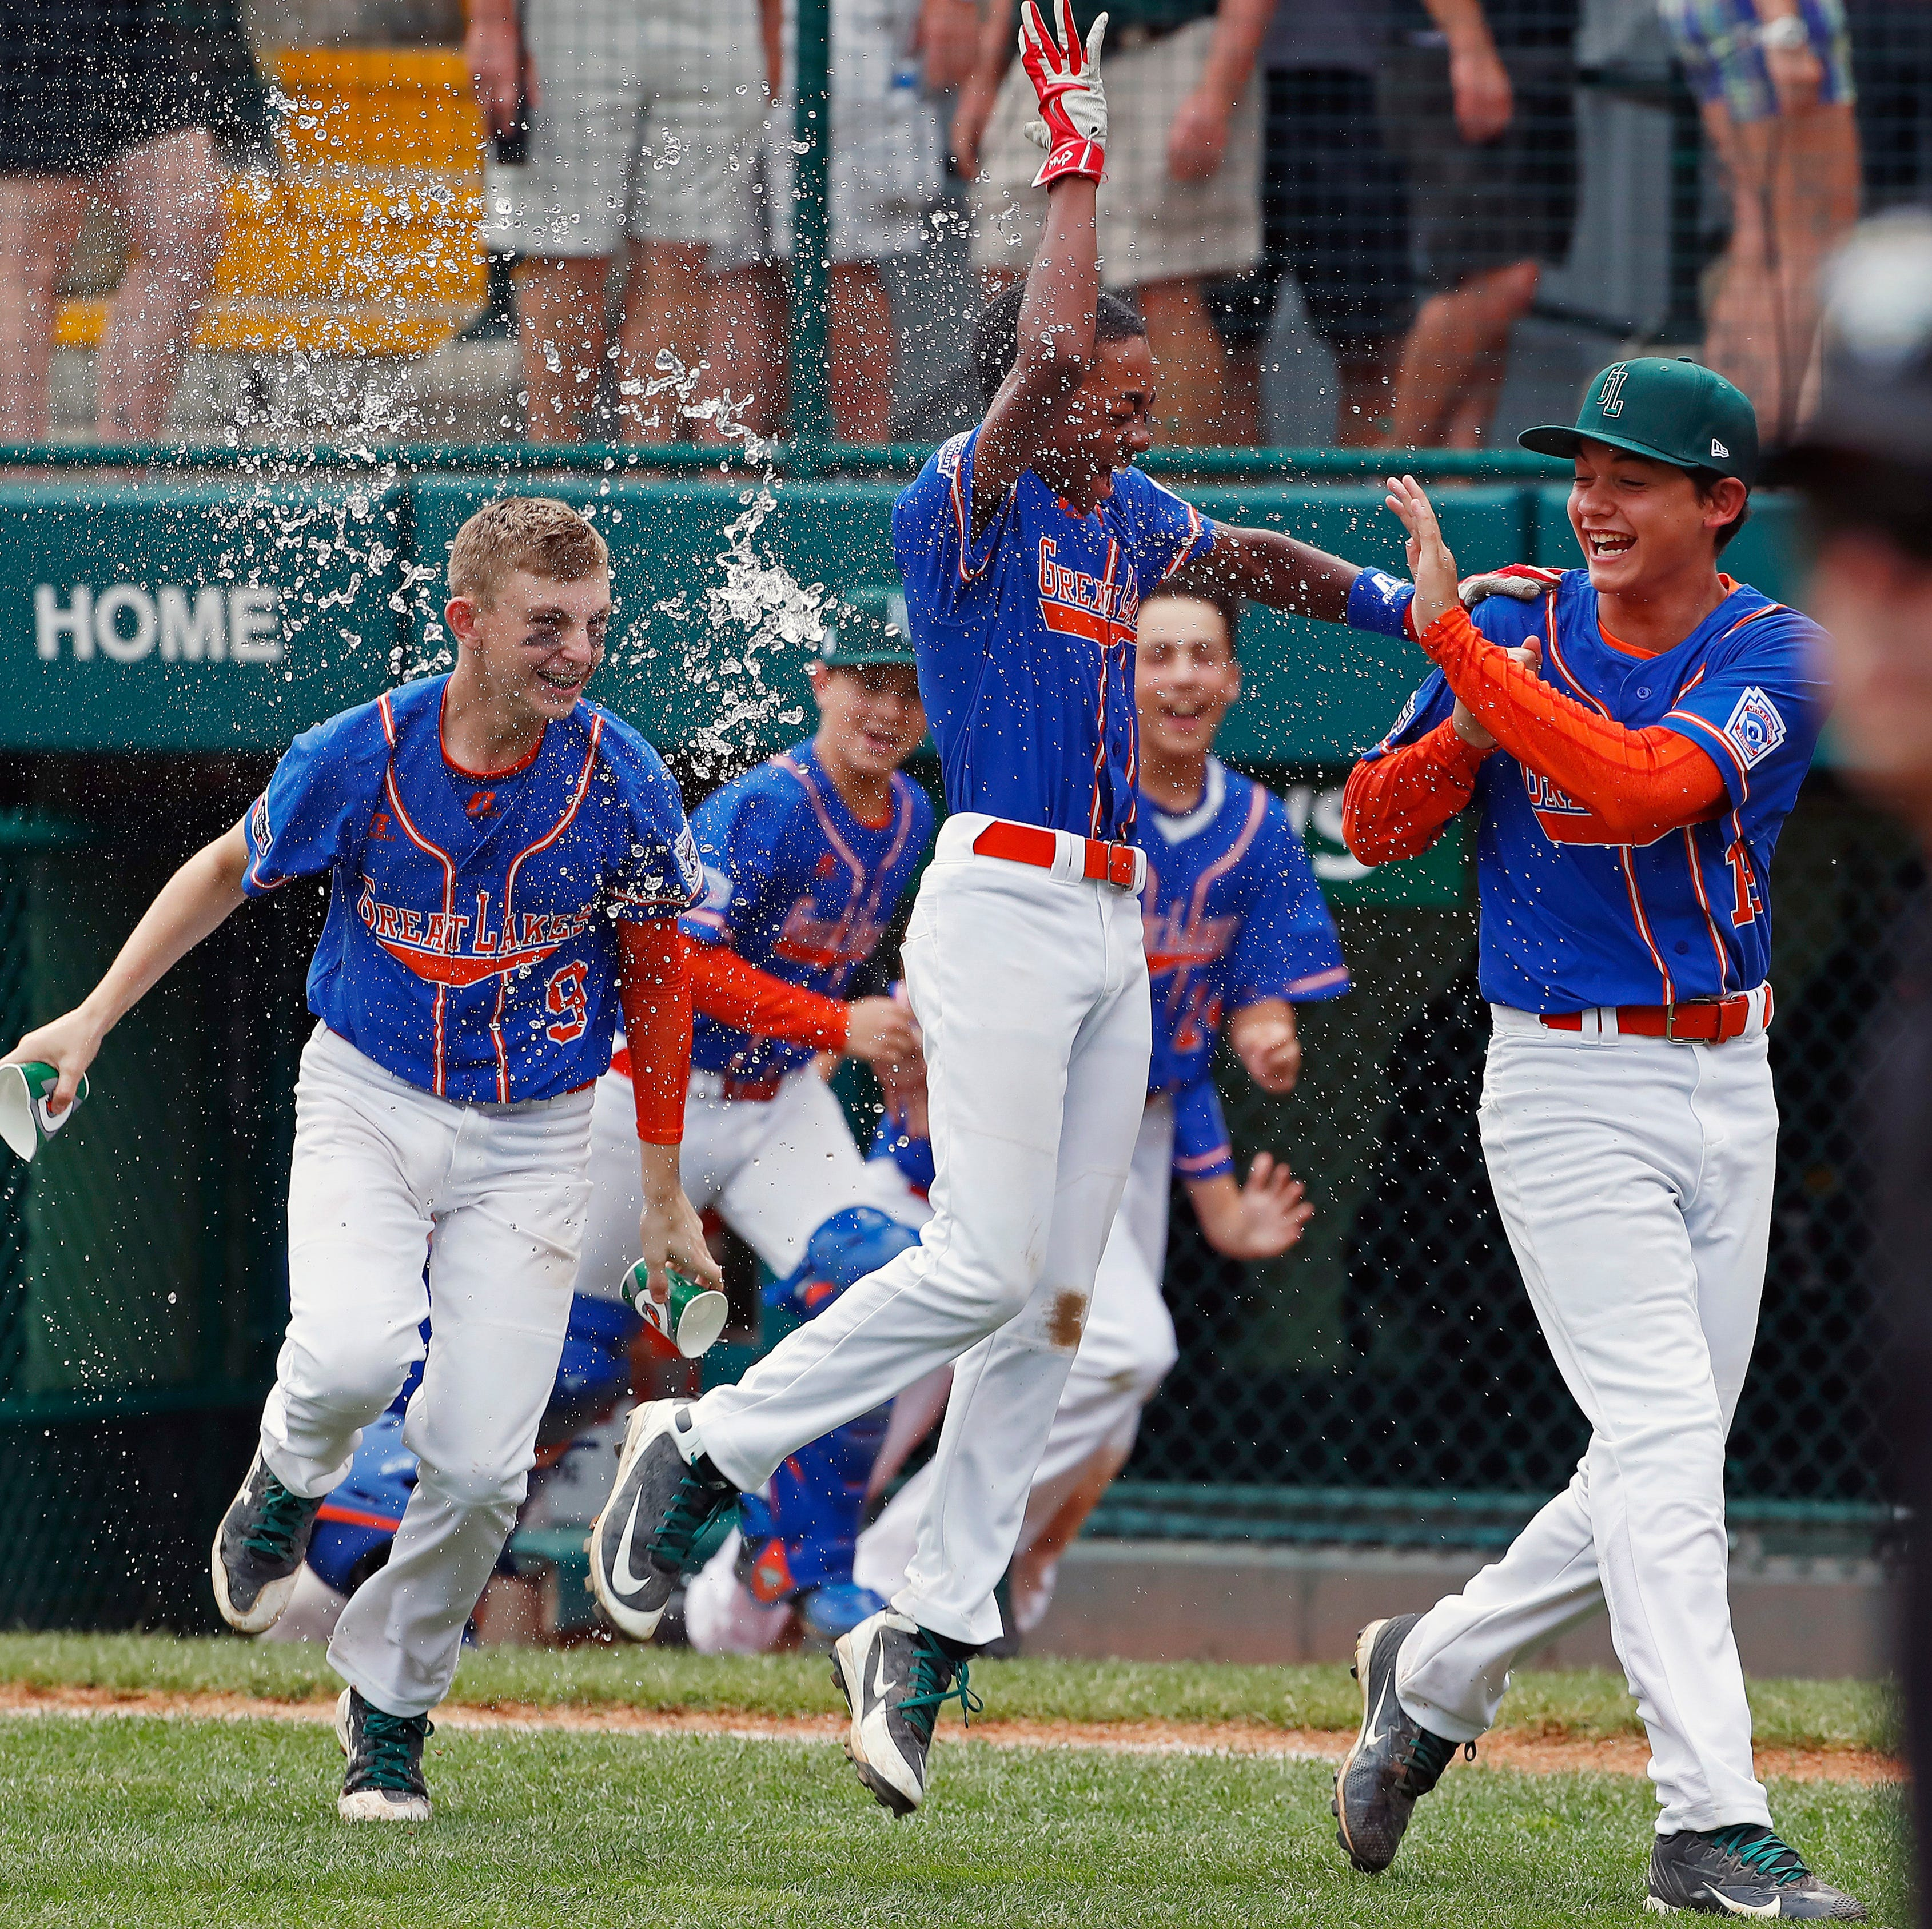 At the Little League World Series, Iowa's Grandview eliminated in a walk-off heartbreaker